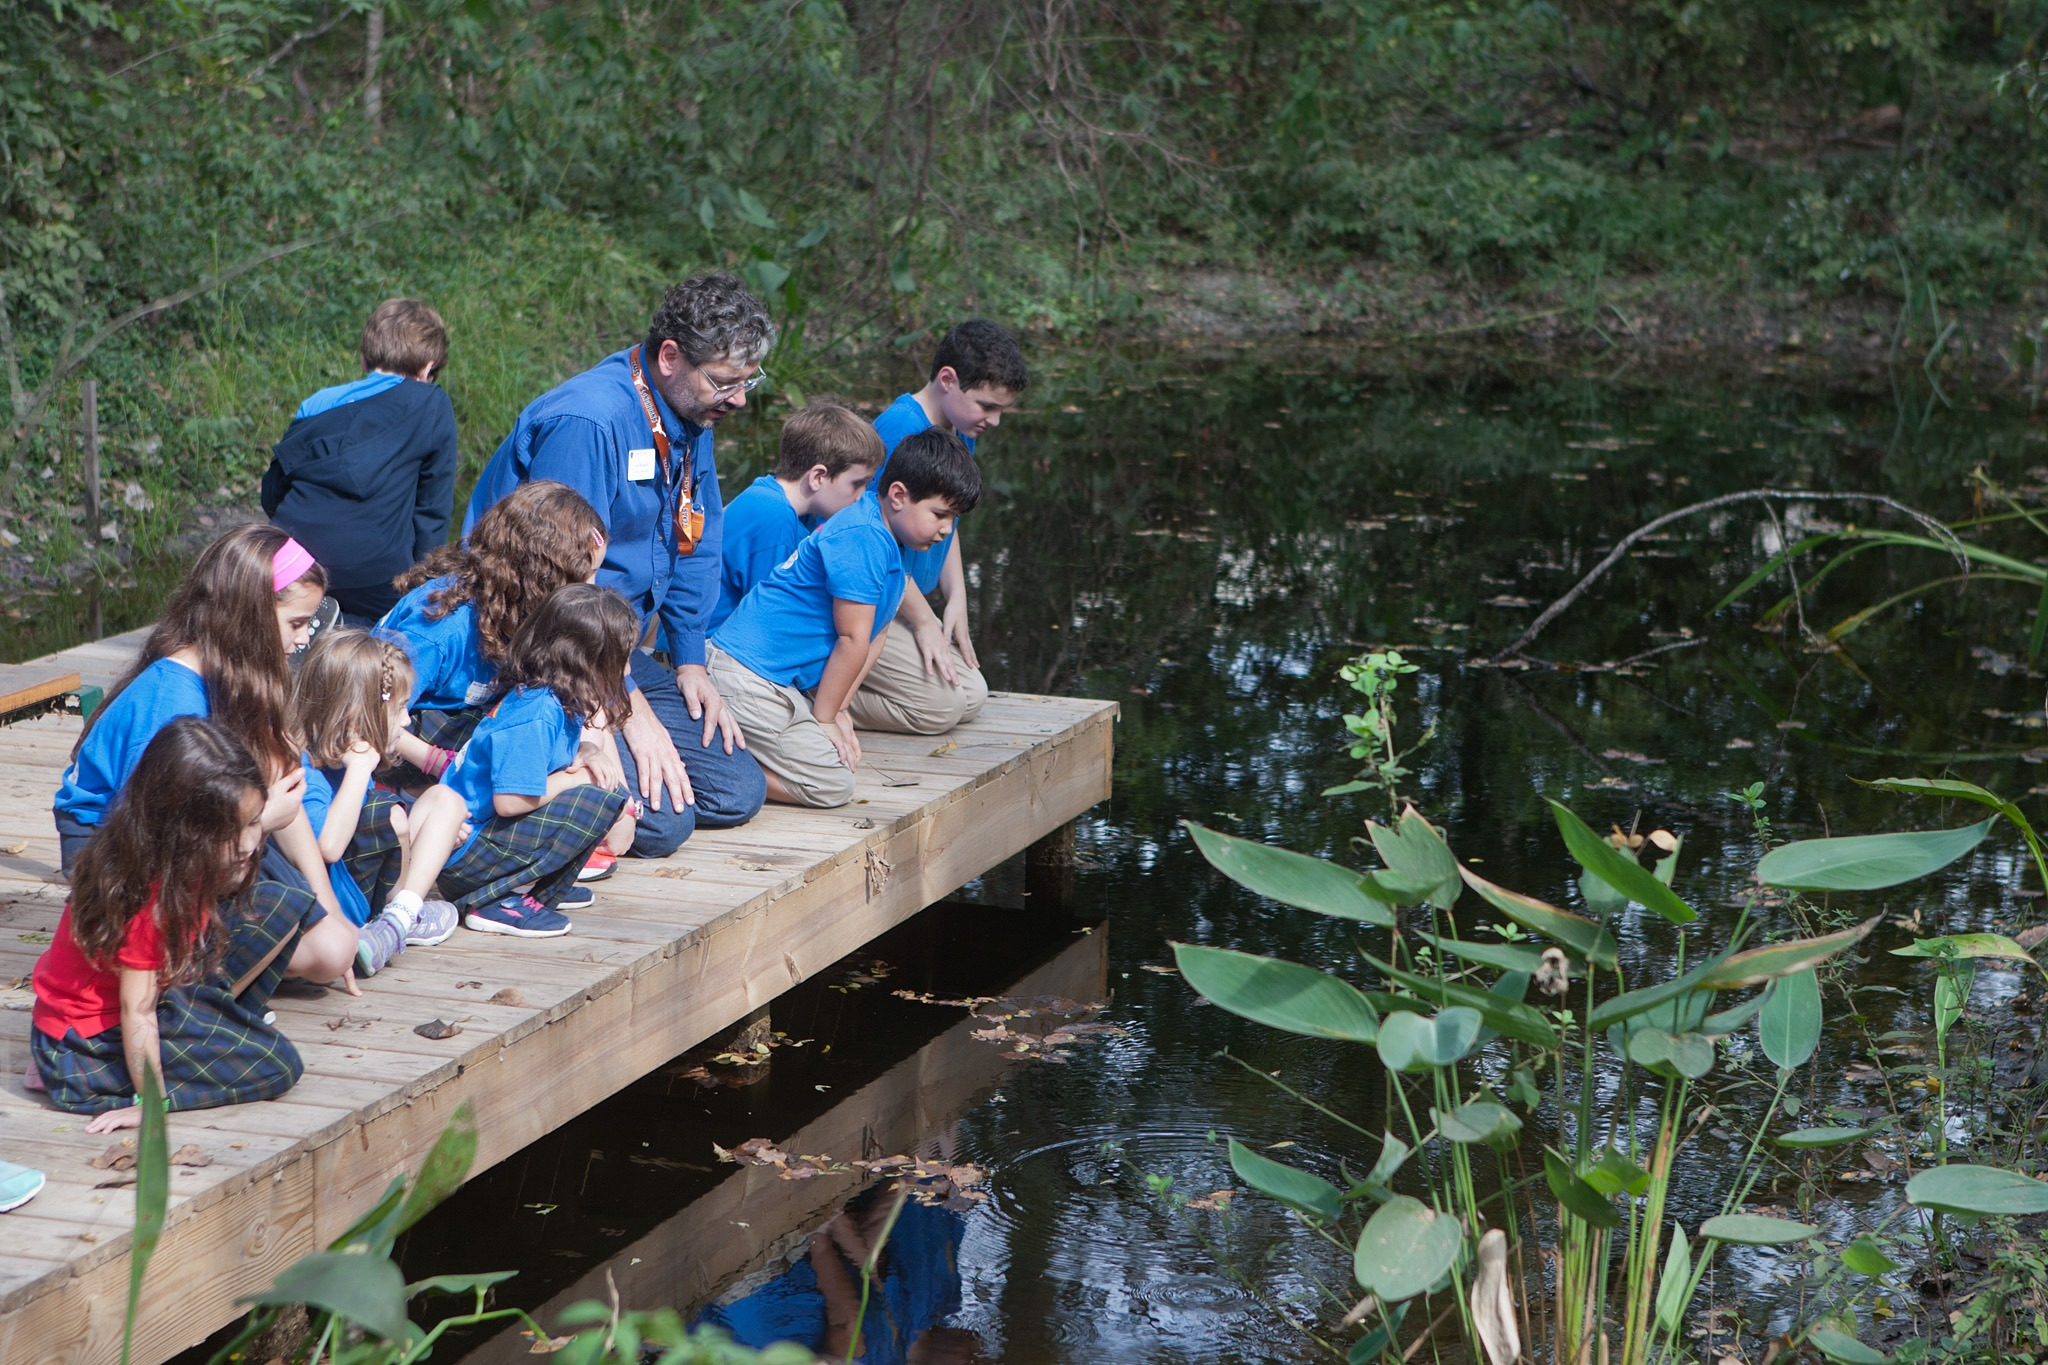 meyerland preserve helps local children learn about nature